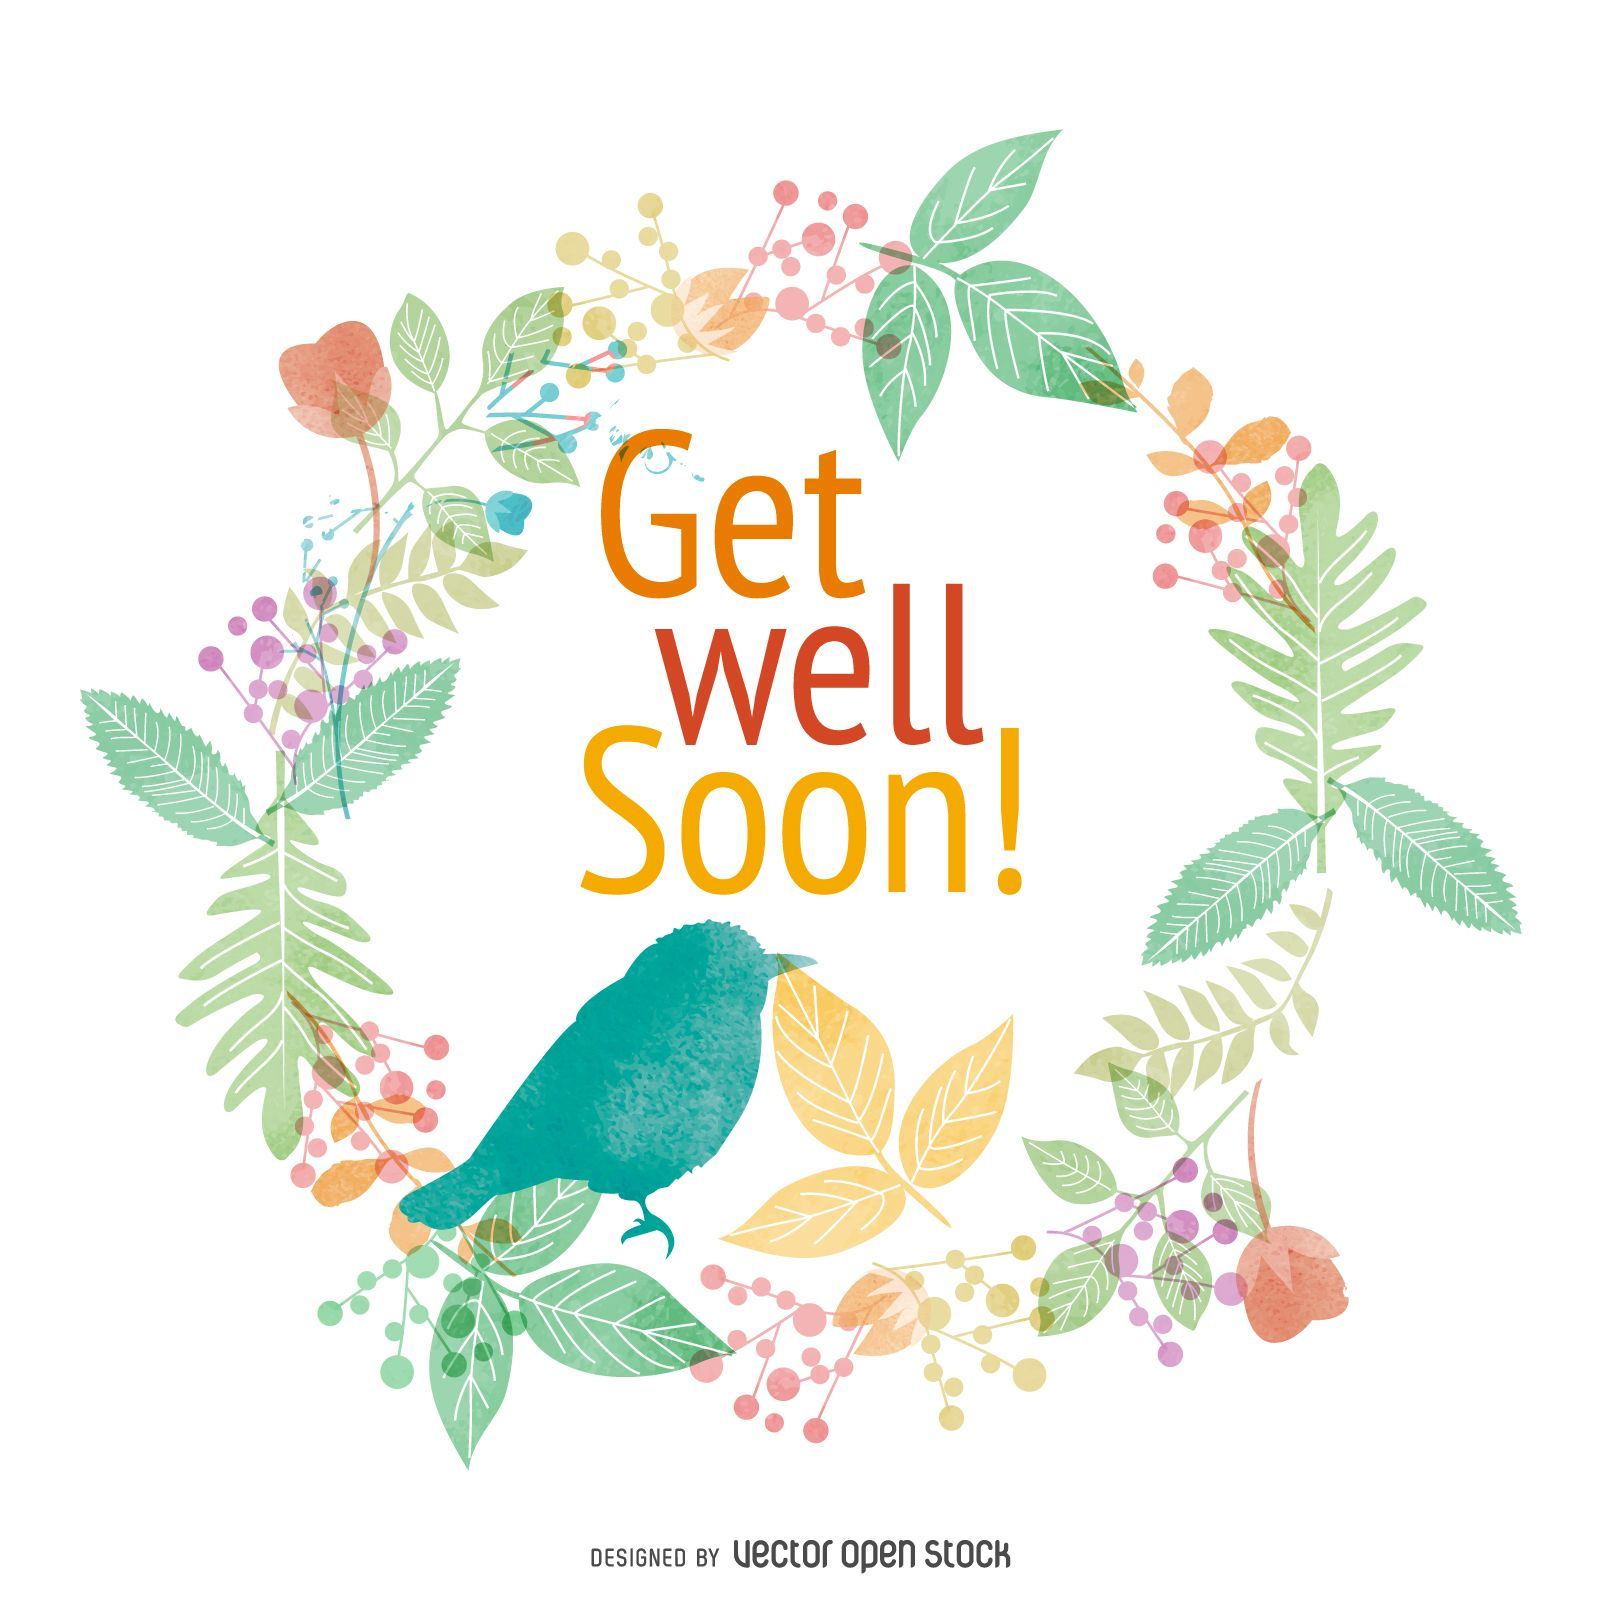 Get Well Soon Watercolor Card Design Featuring Flowers And Birds